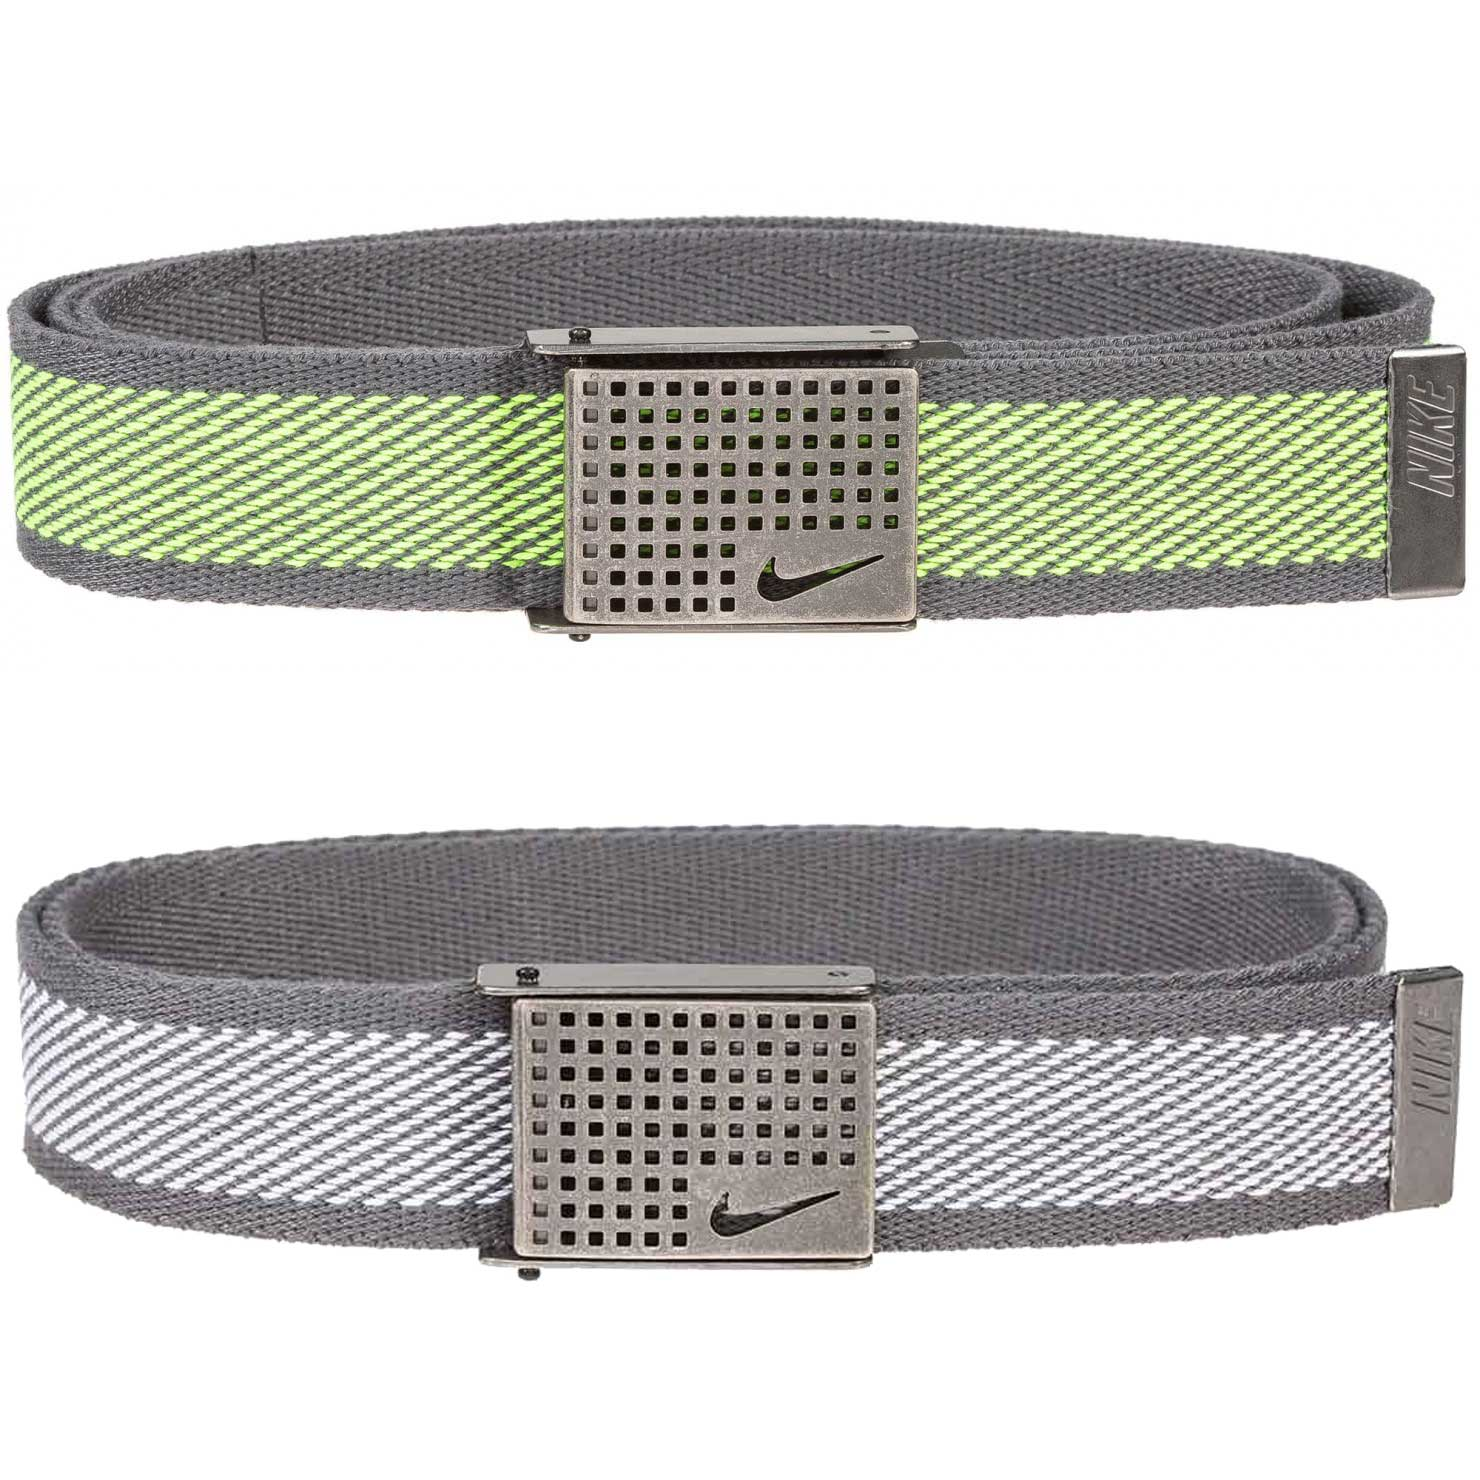 Nike Diagonal Web Belt With Cutout Buckle